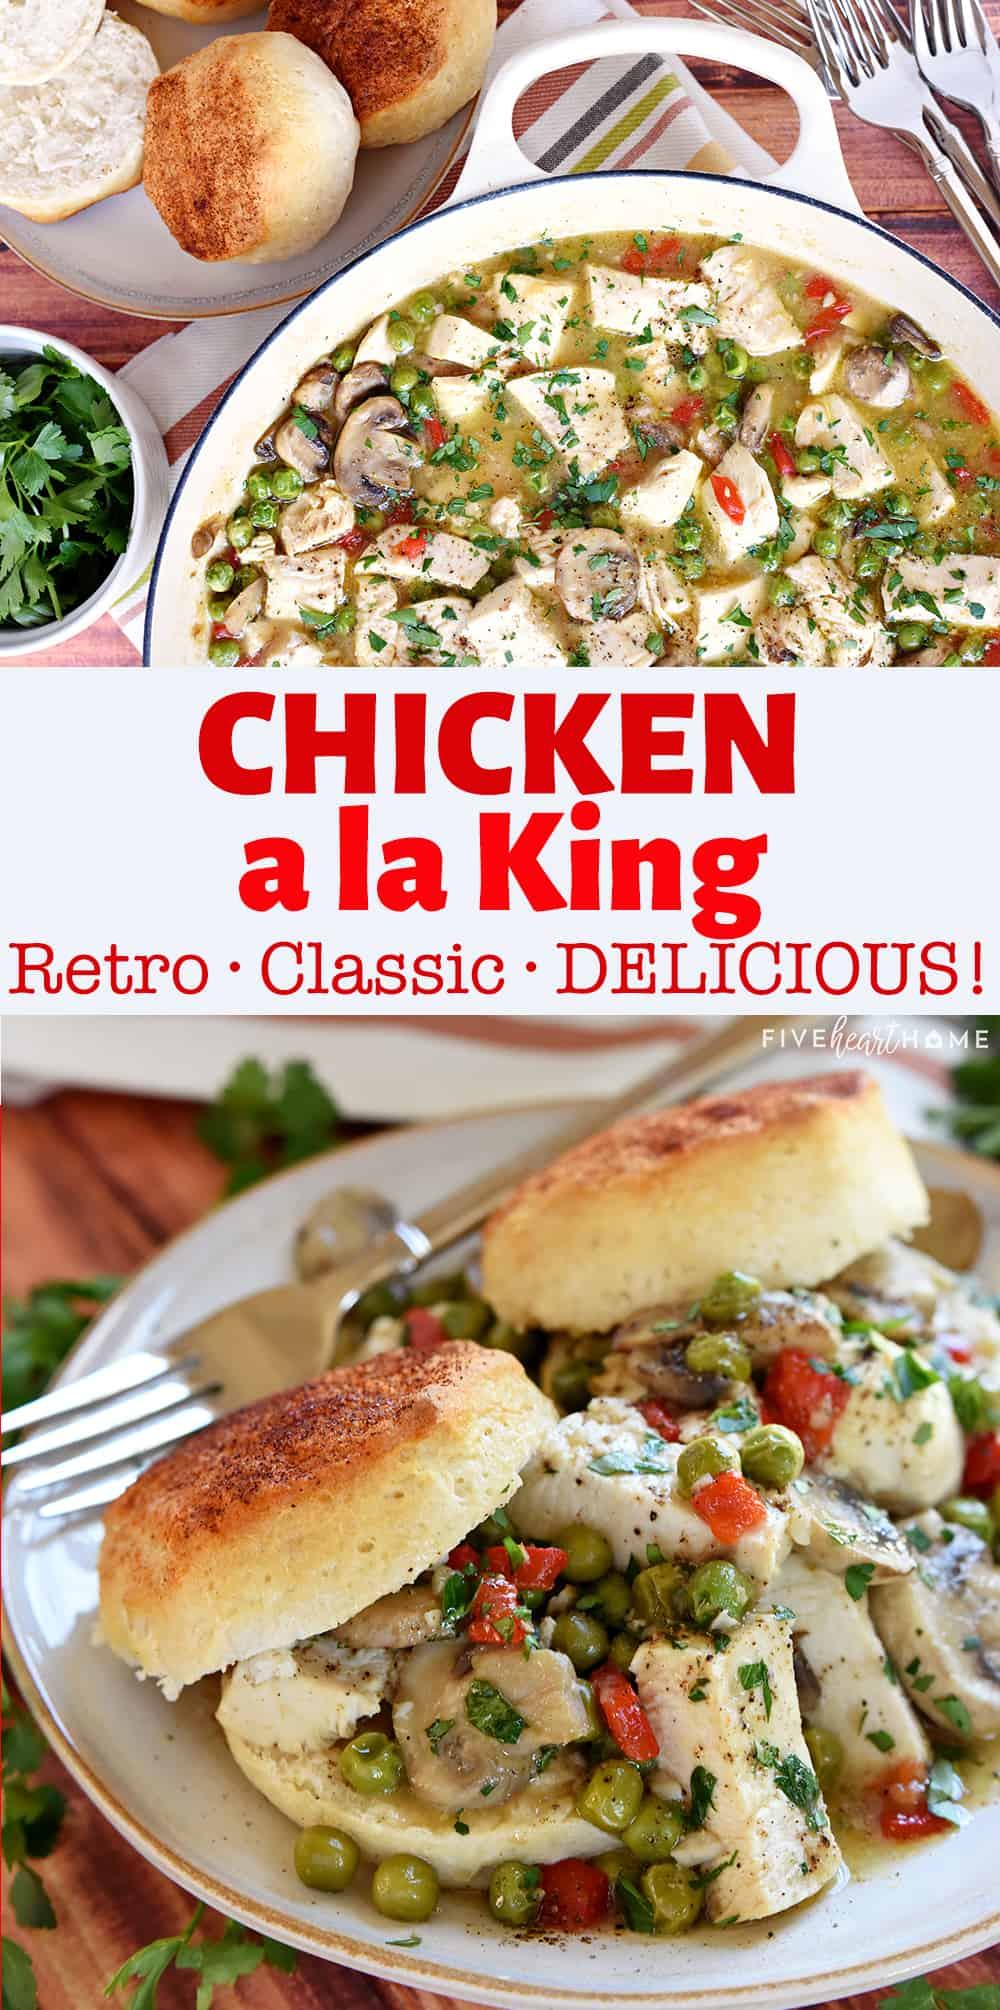 Chicken ala King is a classic, healthy dinner recipe featuring tender chicken breasts, garlicky mushrooms, sweet peas, zesty pimentos, and fresh parsley in a flavorful sauce served over warm, fluffy biscuits. via @fivehearthome